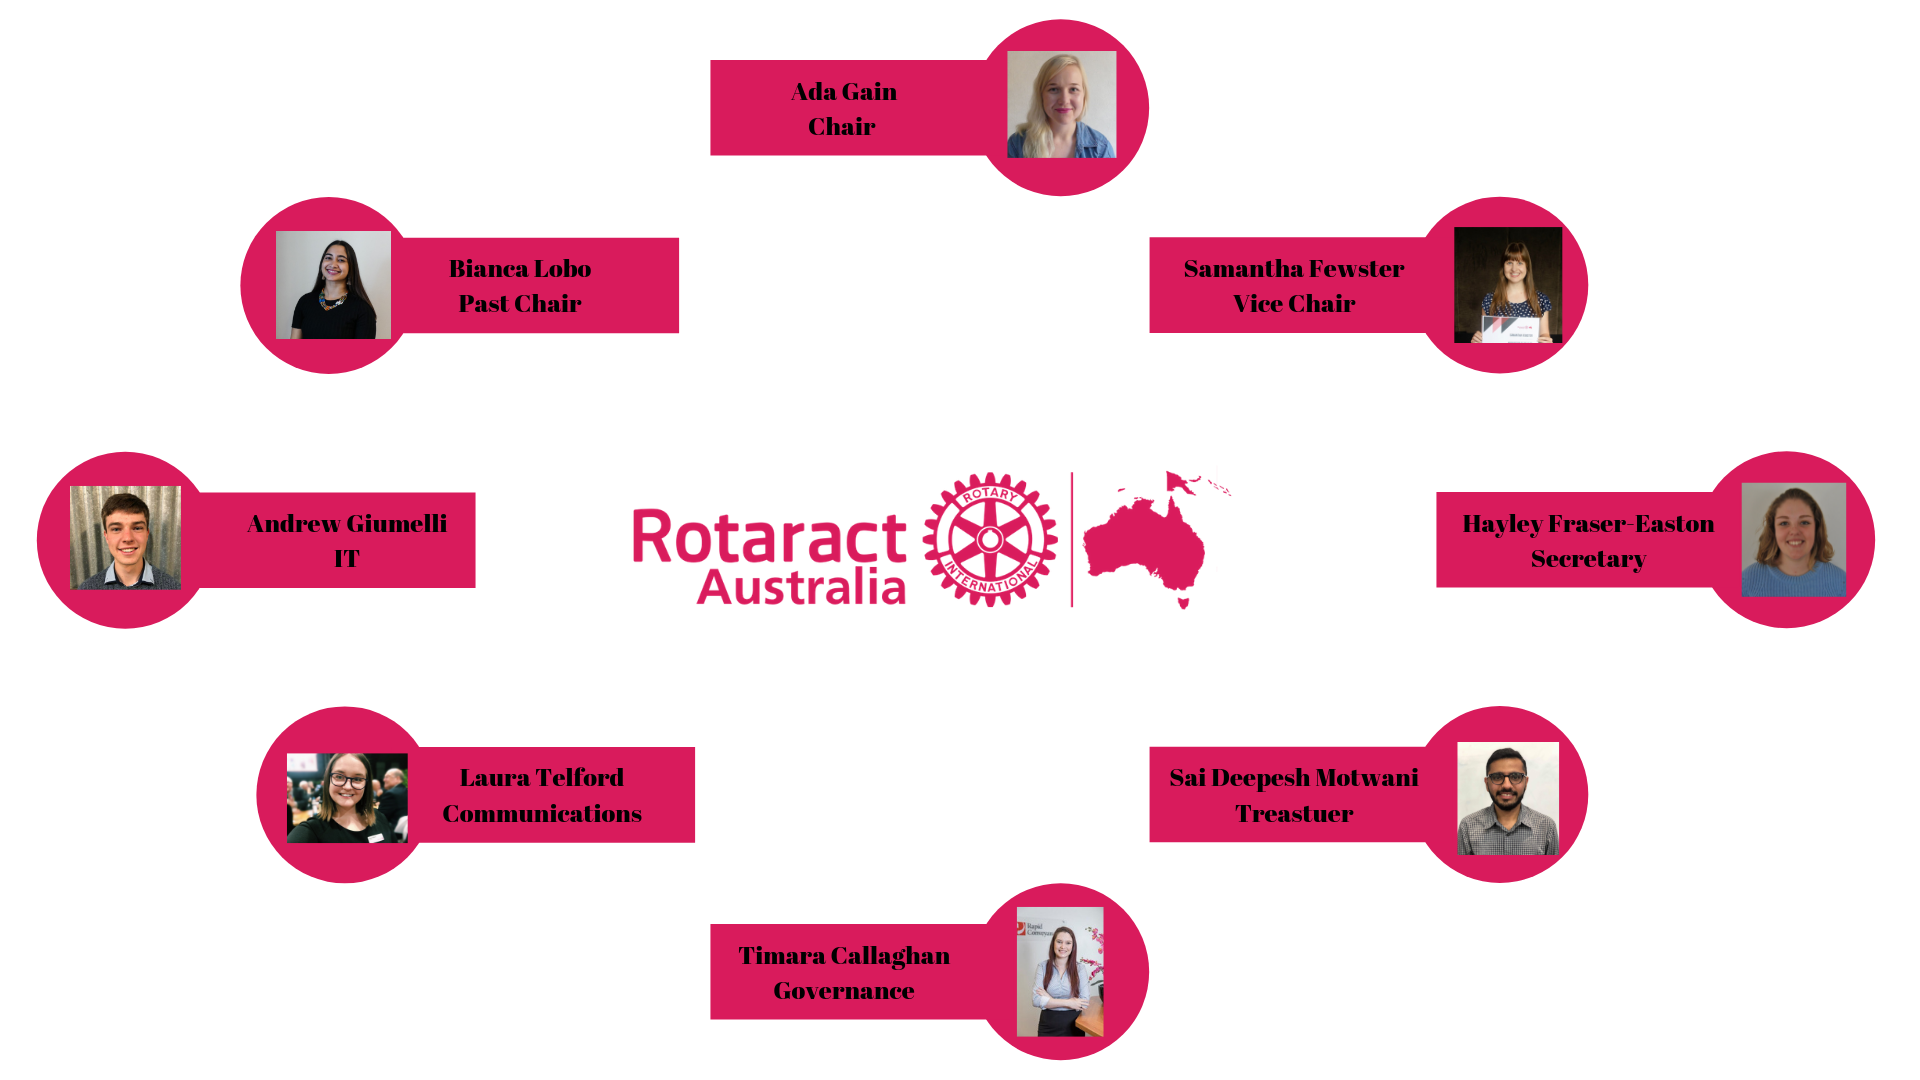 Ada Gain Chair Rotaract Australia (1)